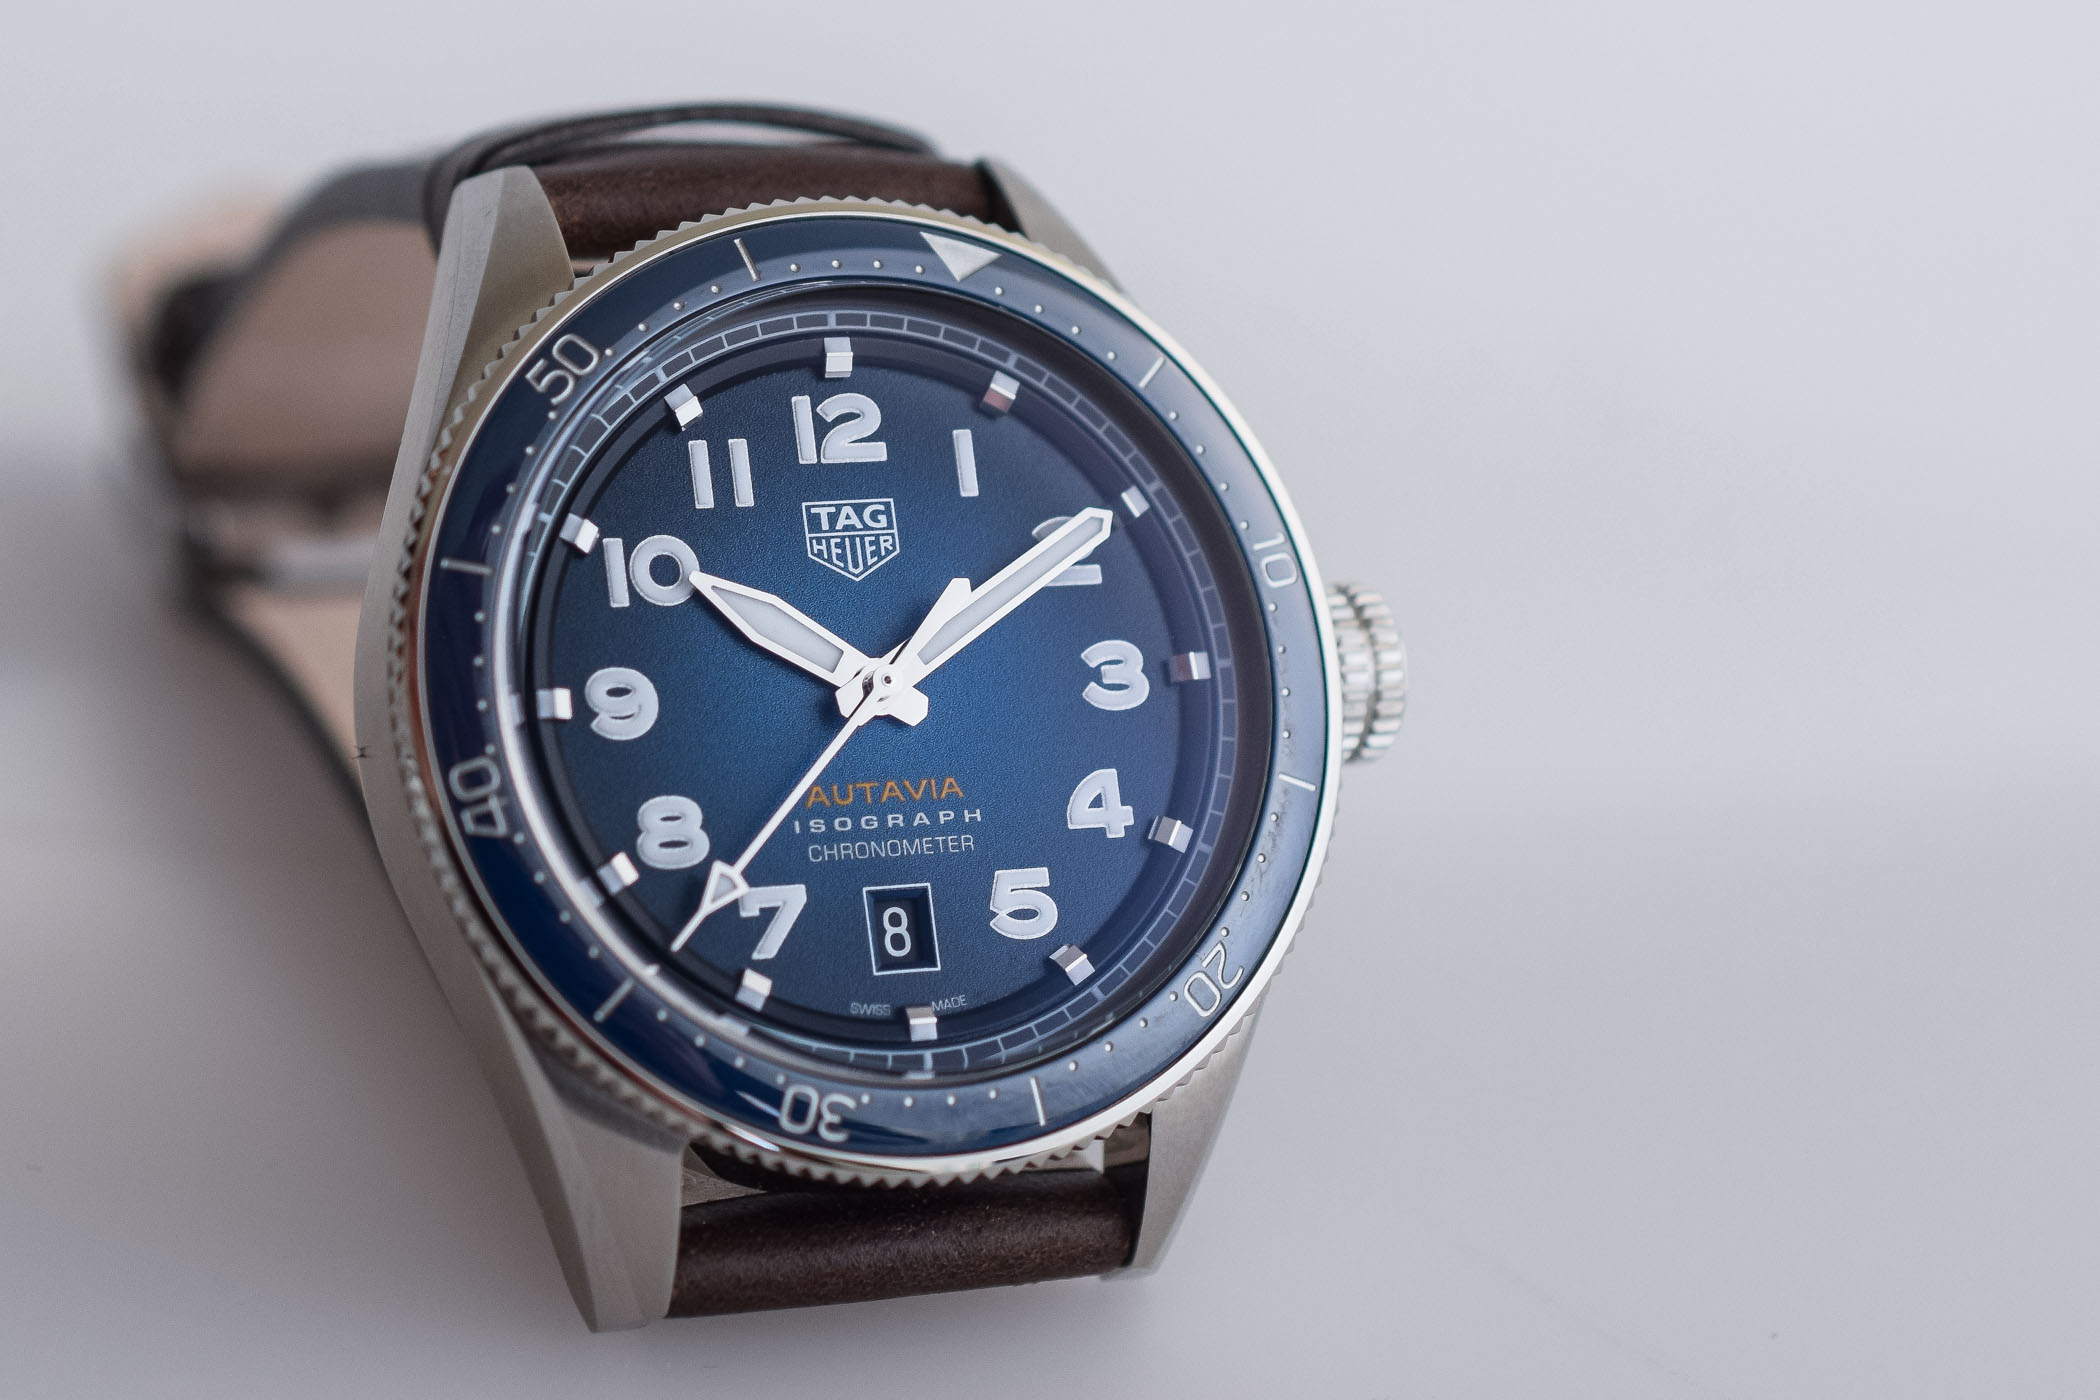 Baselworld 2019 tag heuer autavia isograph chronometer with carbon hairspring specs price for Tag heuer autavia isograph